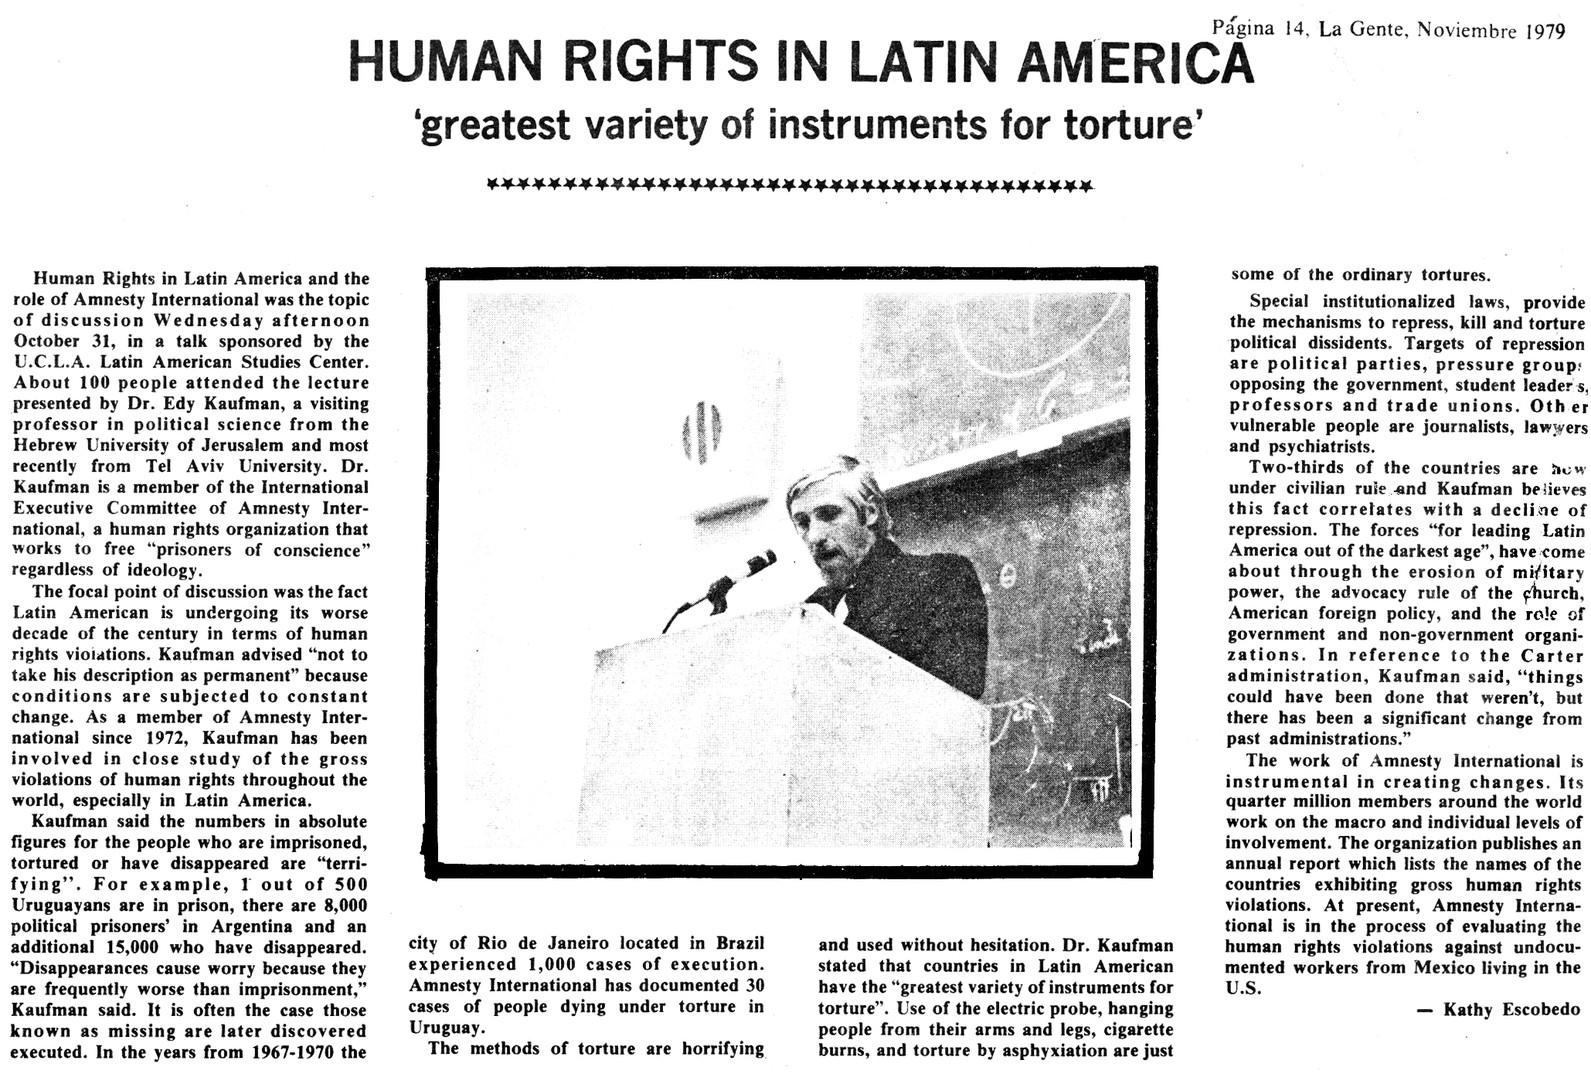 Human Rights in Latin America november 1